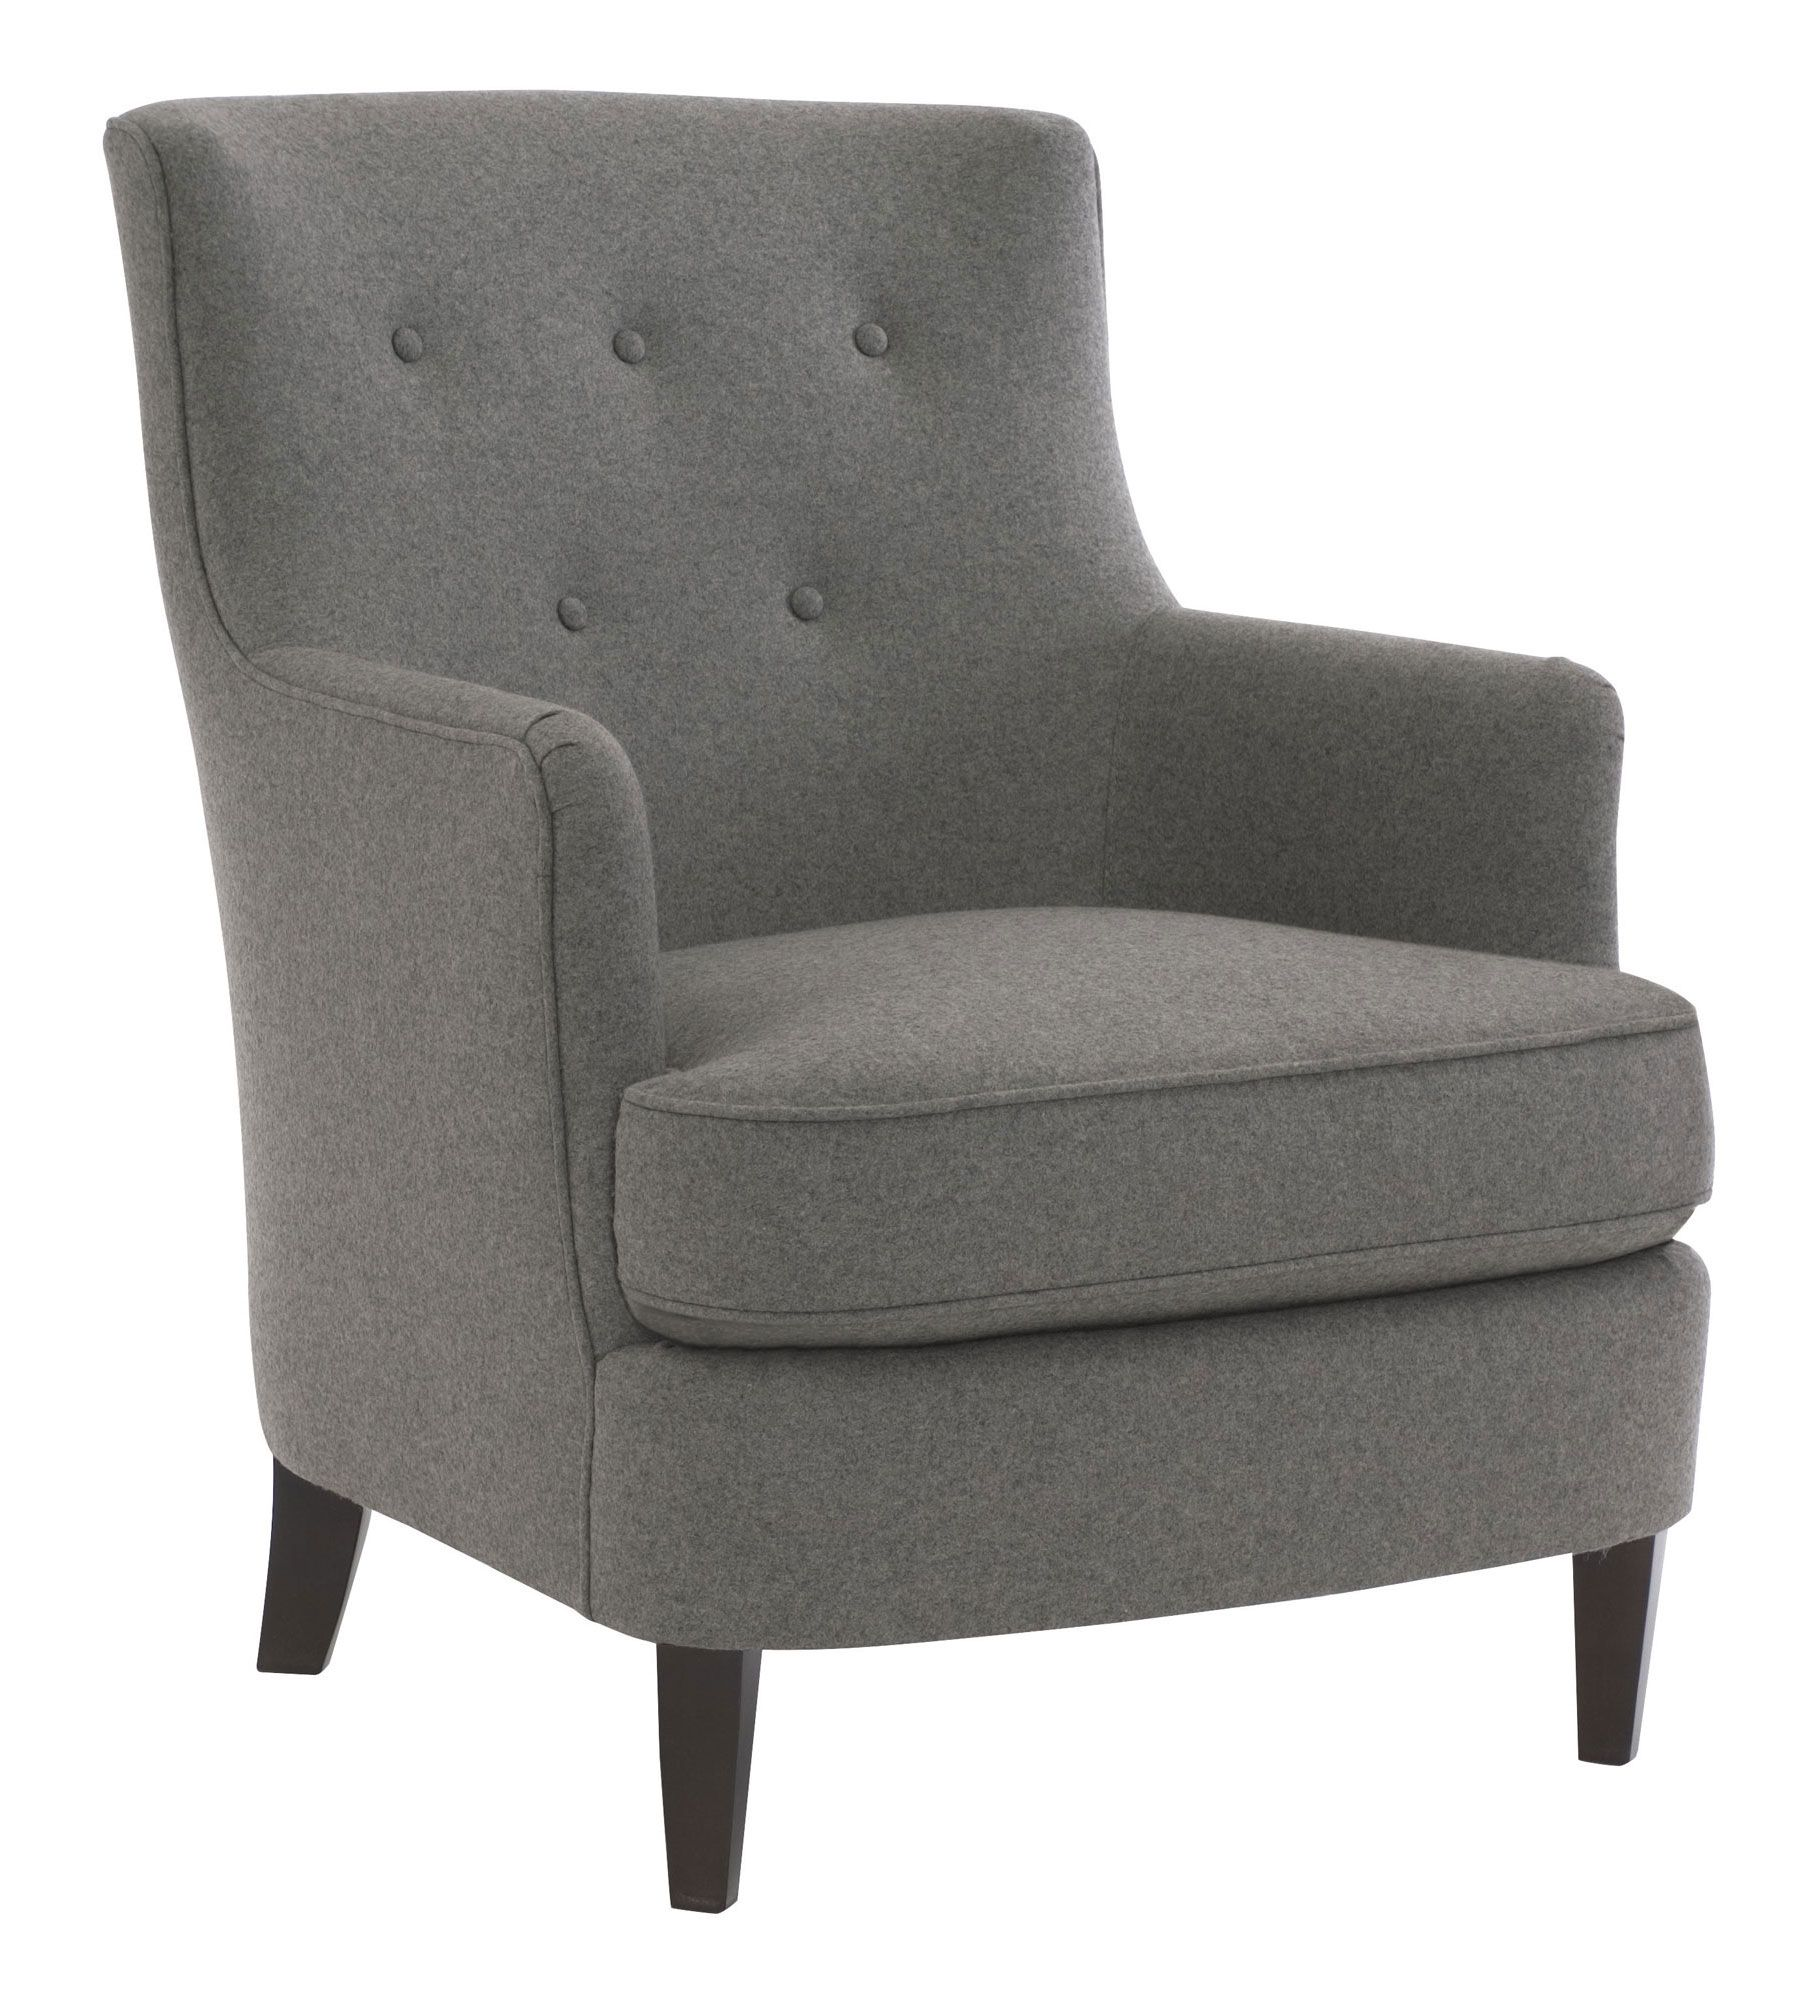 Overstuffed Wingback Chair Chair Bernhardt Living Room Pinterest Armchairs